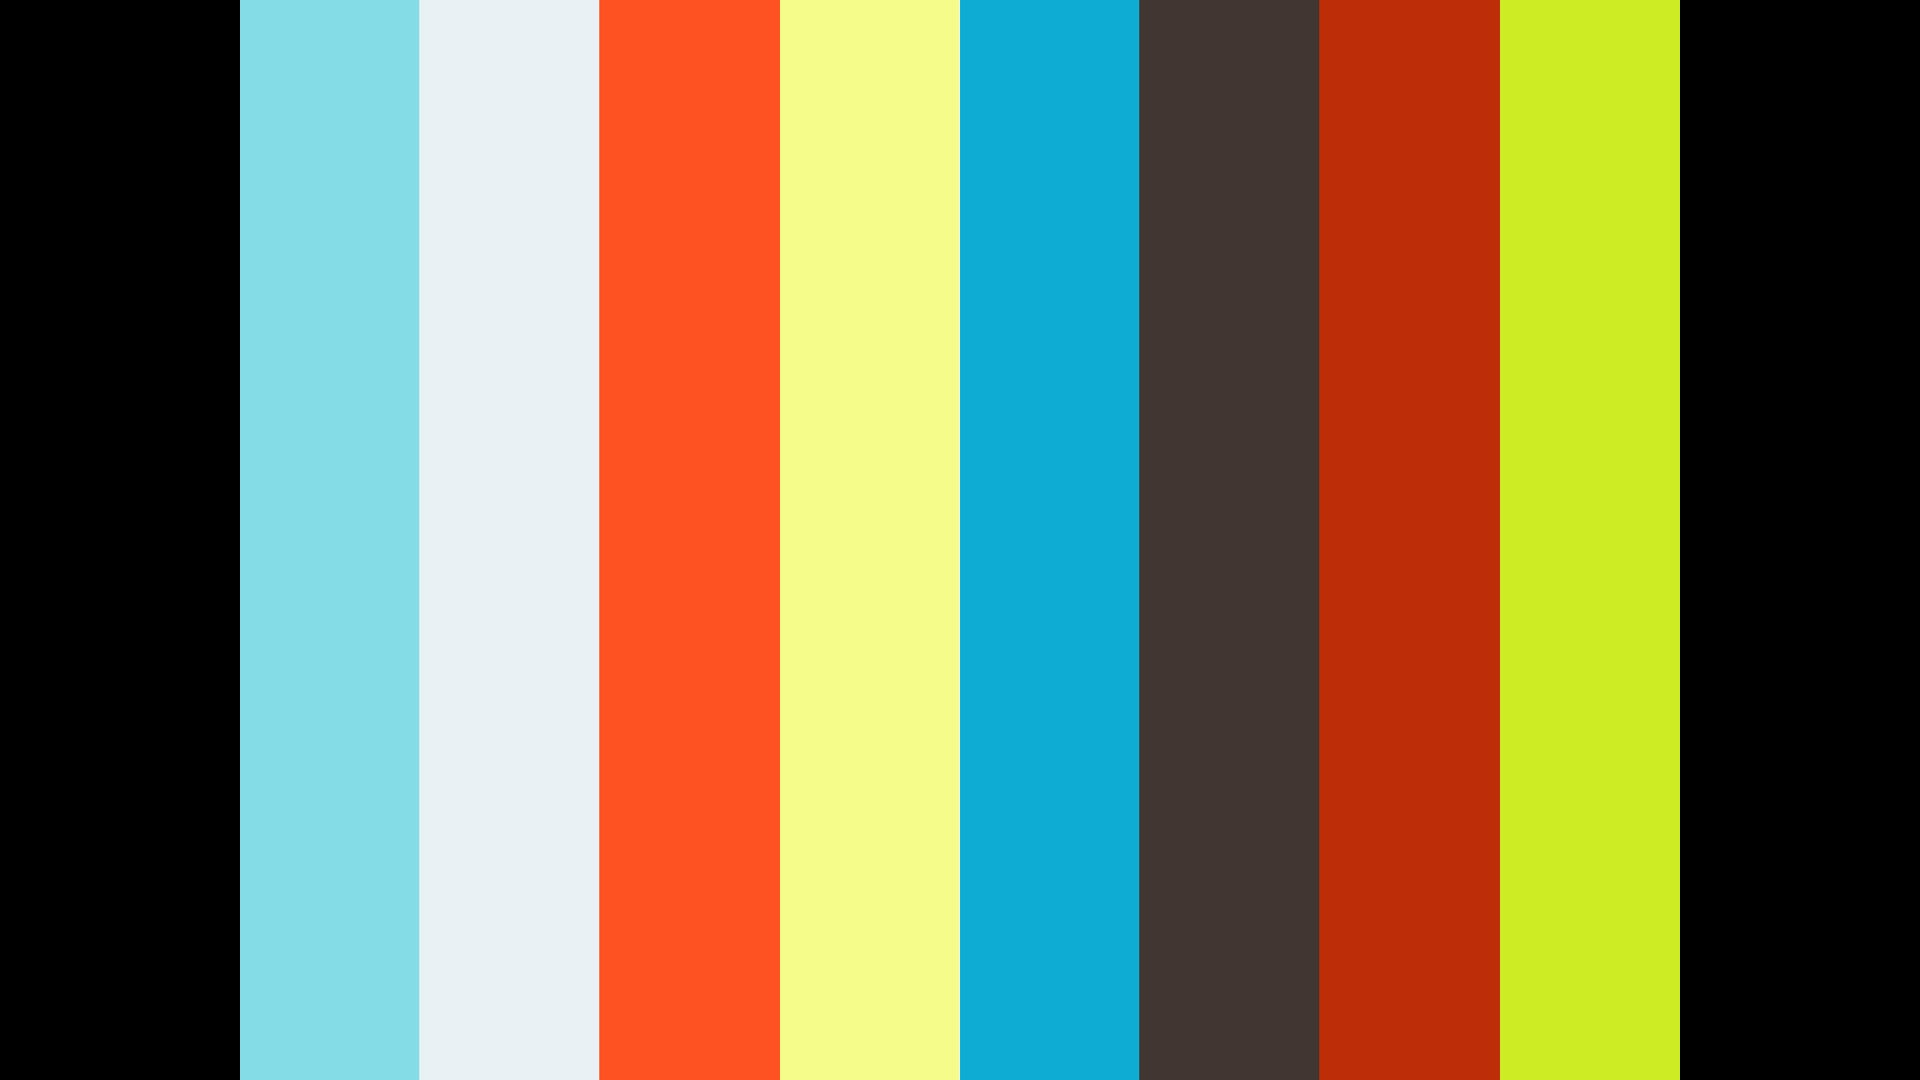 Extract Method Refactoring in Swift